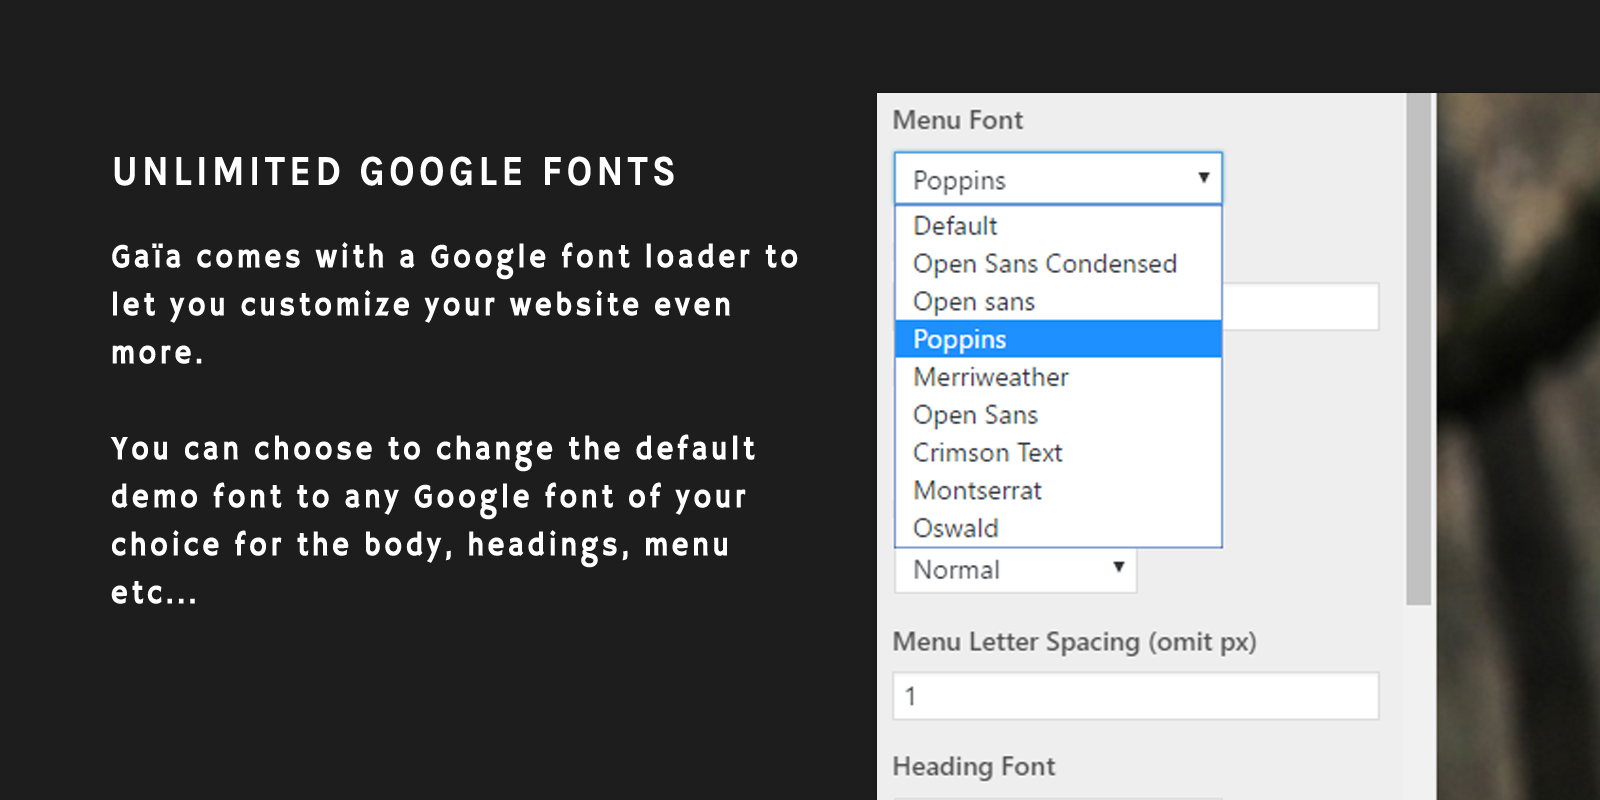 Unlimited Google Fonts